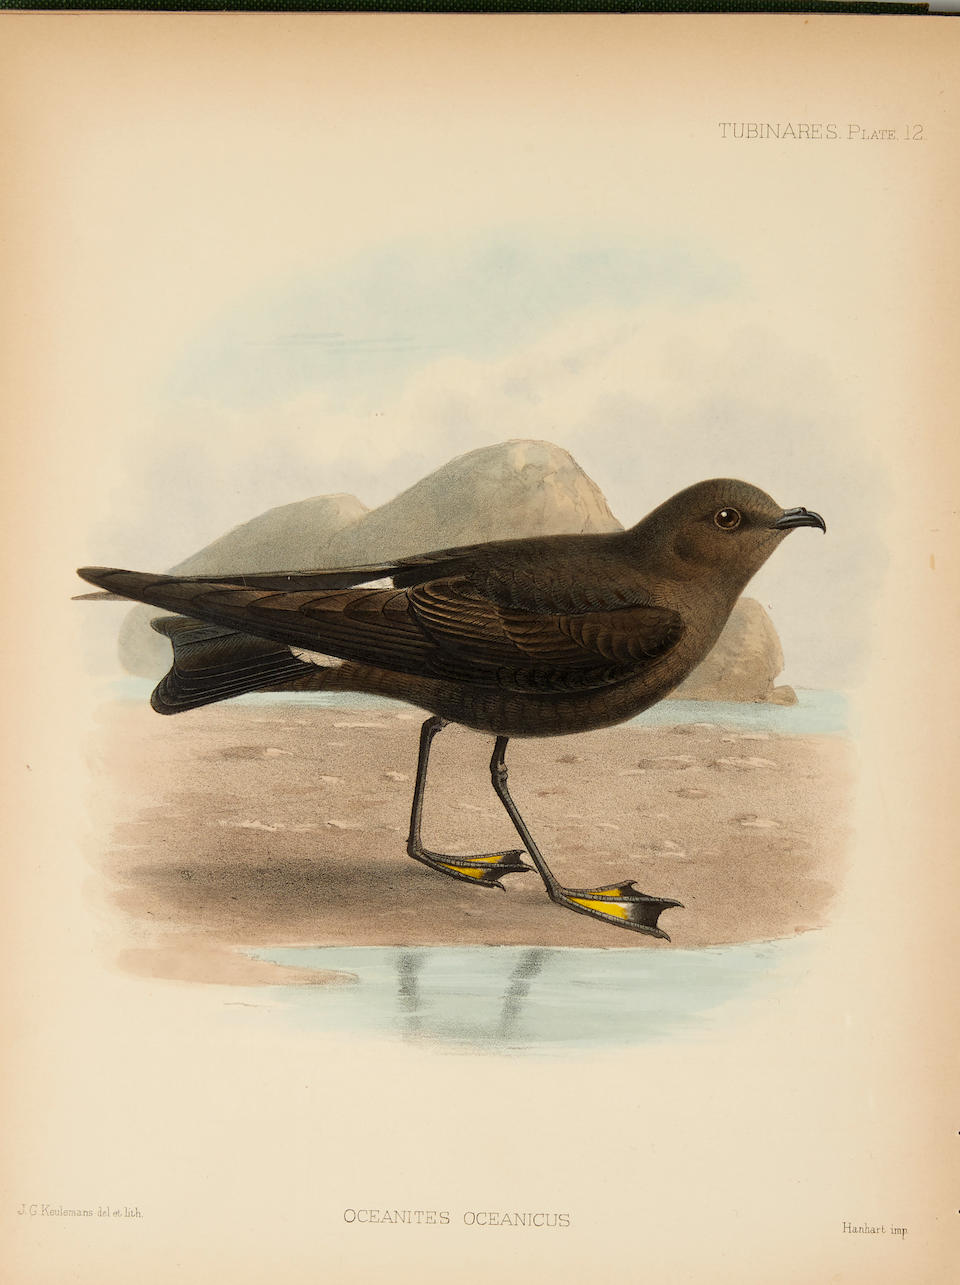 GODMAN, FREDERICK DU CANE. 1834-1919. A Monograph of the Petrels (order Tubinares). London: Witherby & Co., 1907-10.